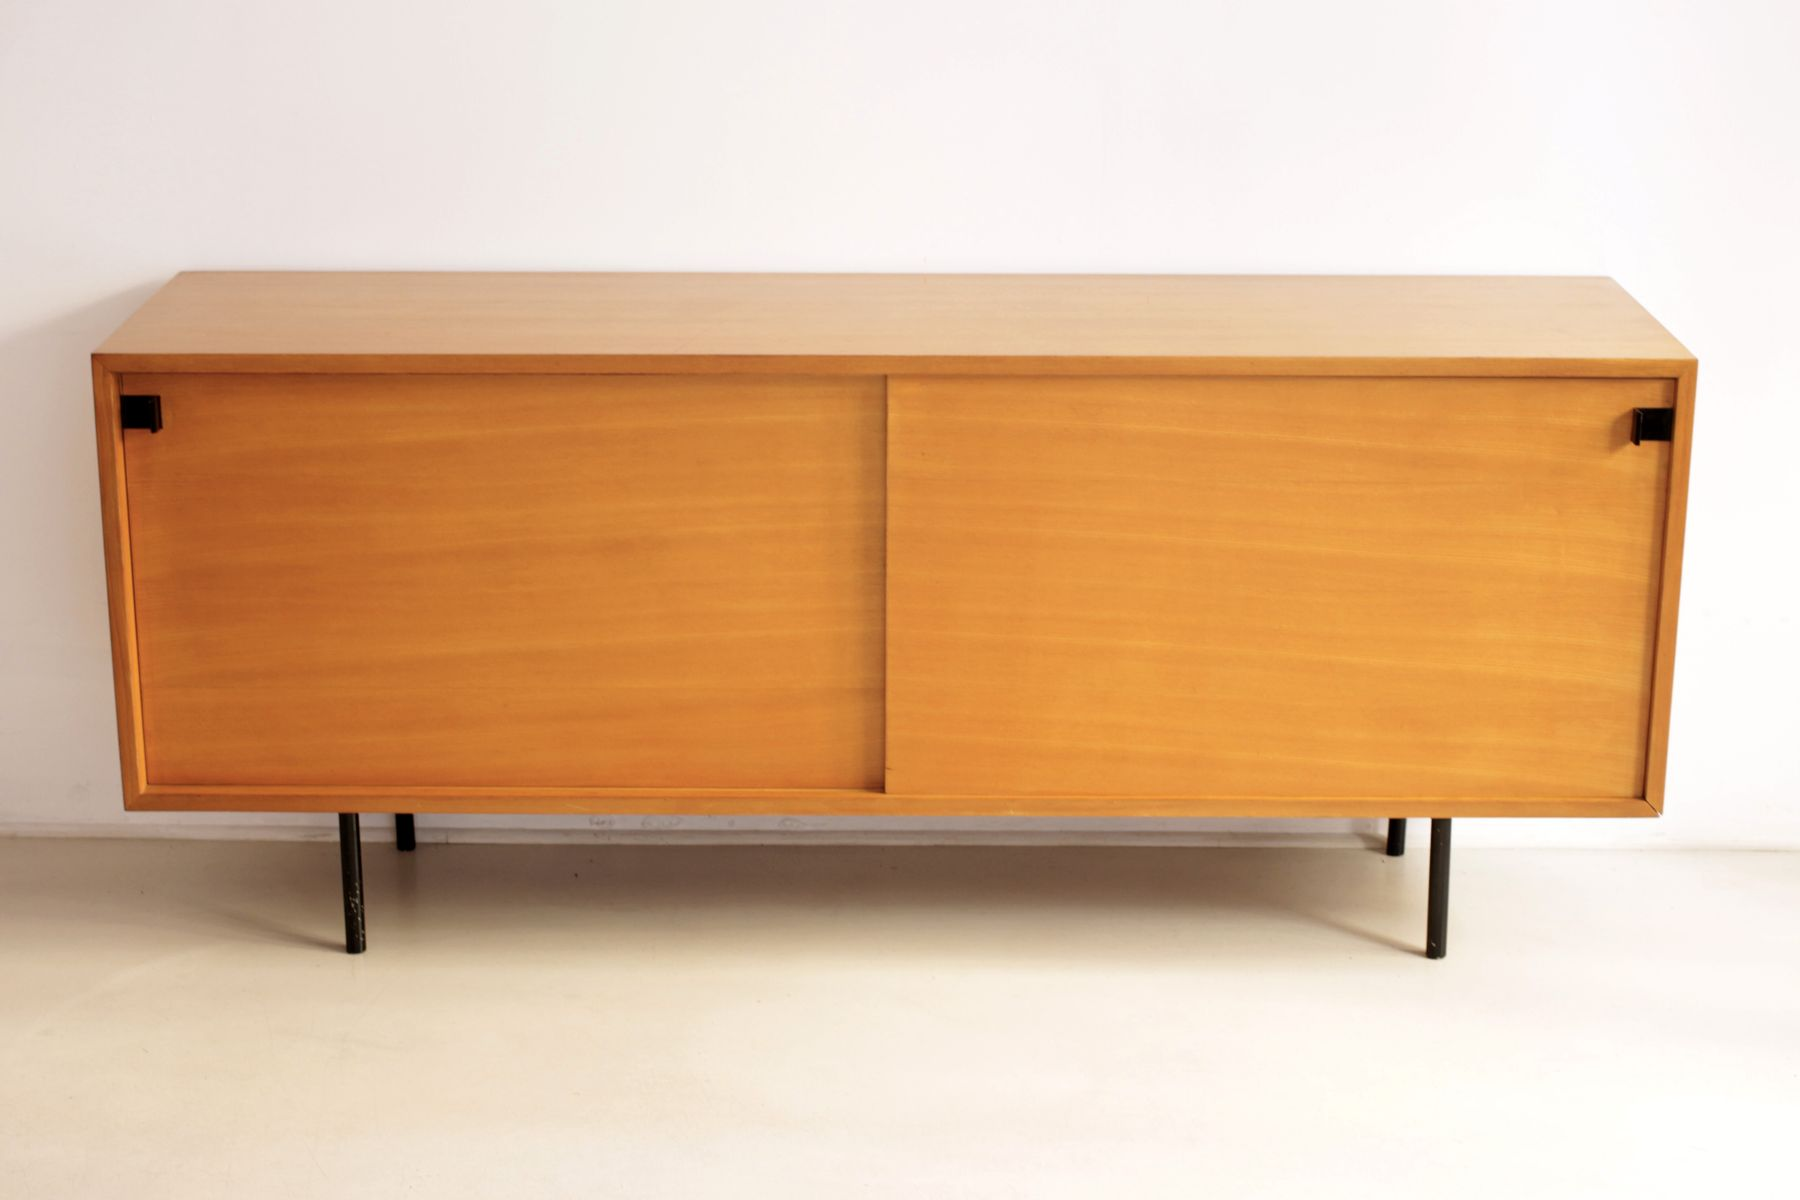 French sideboard by alain richard for meubles tv 1953 en for Sideboard 4 meter lang